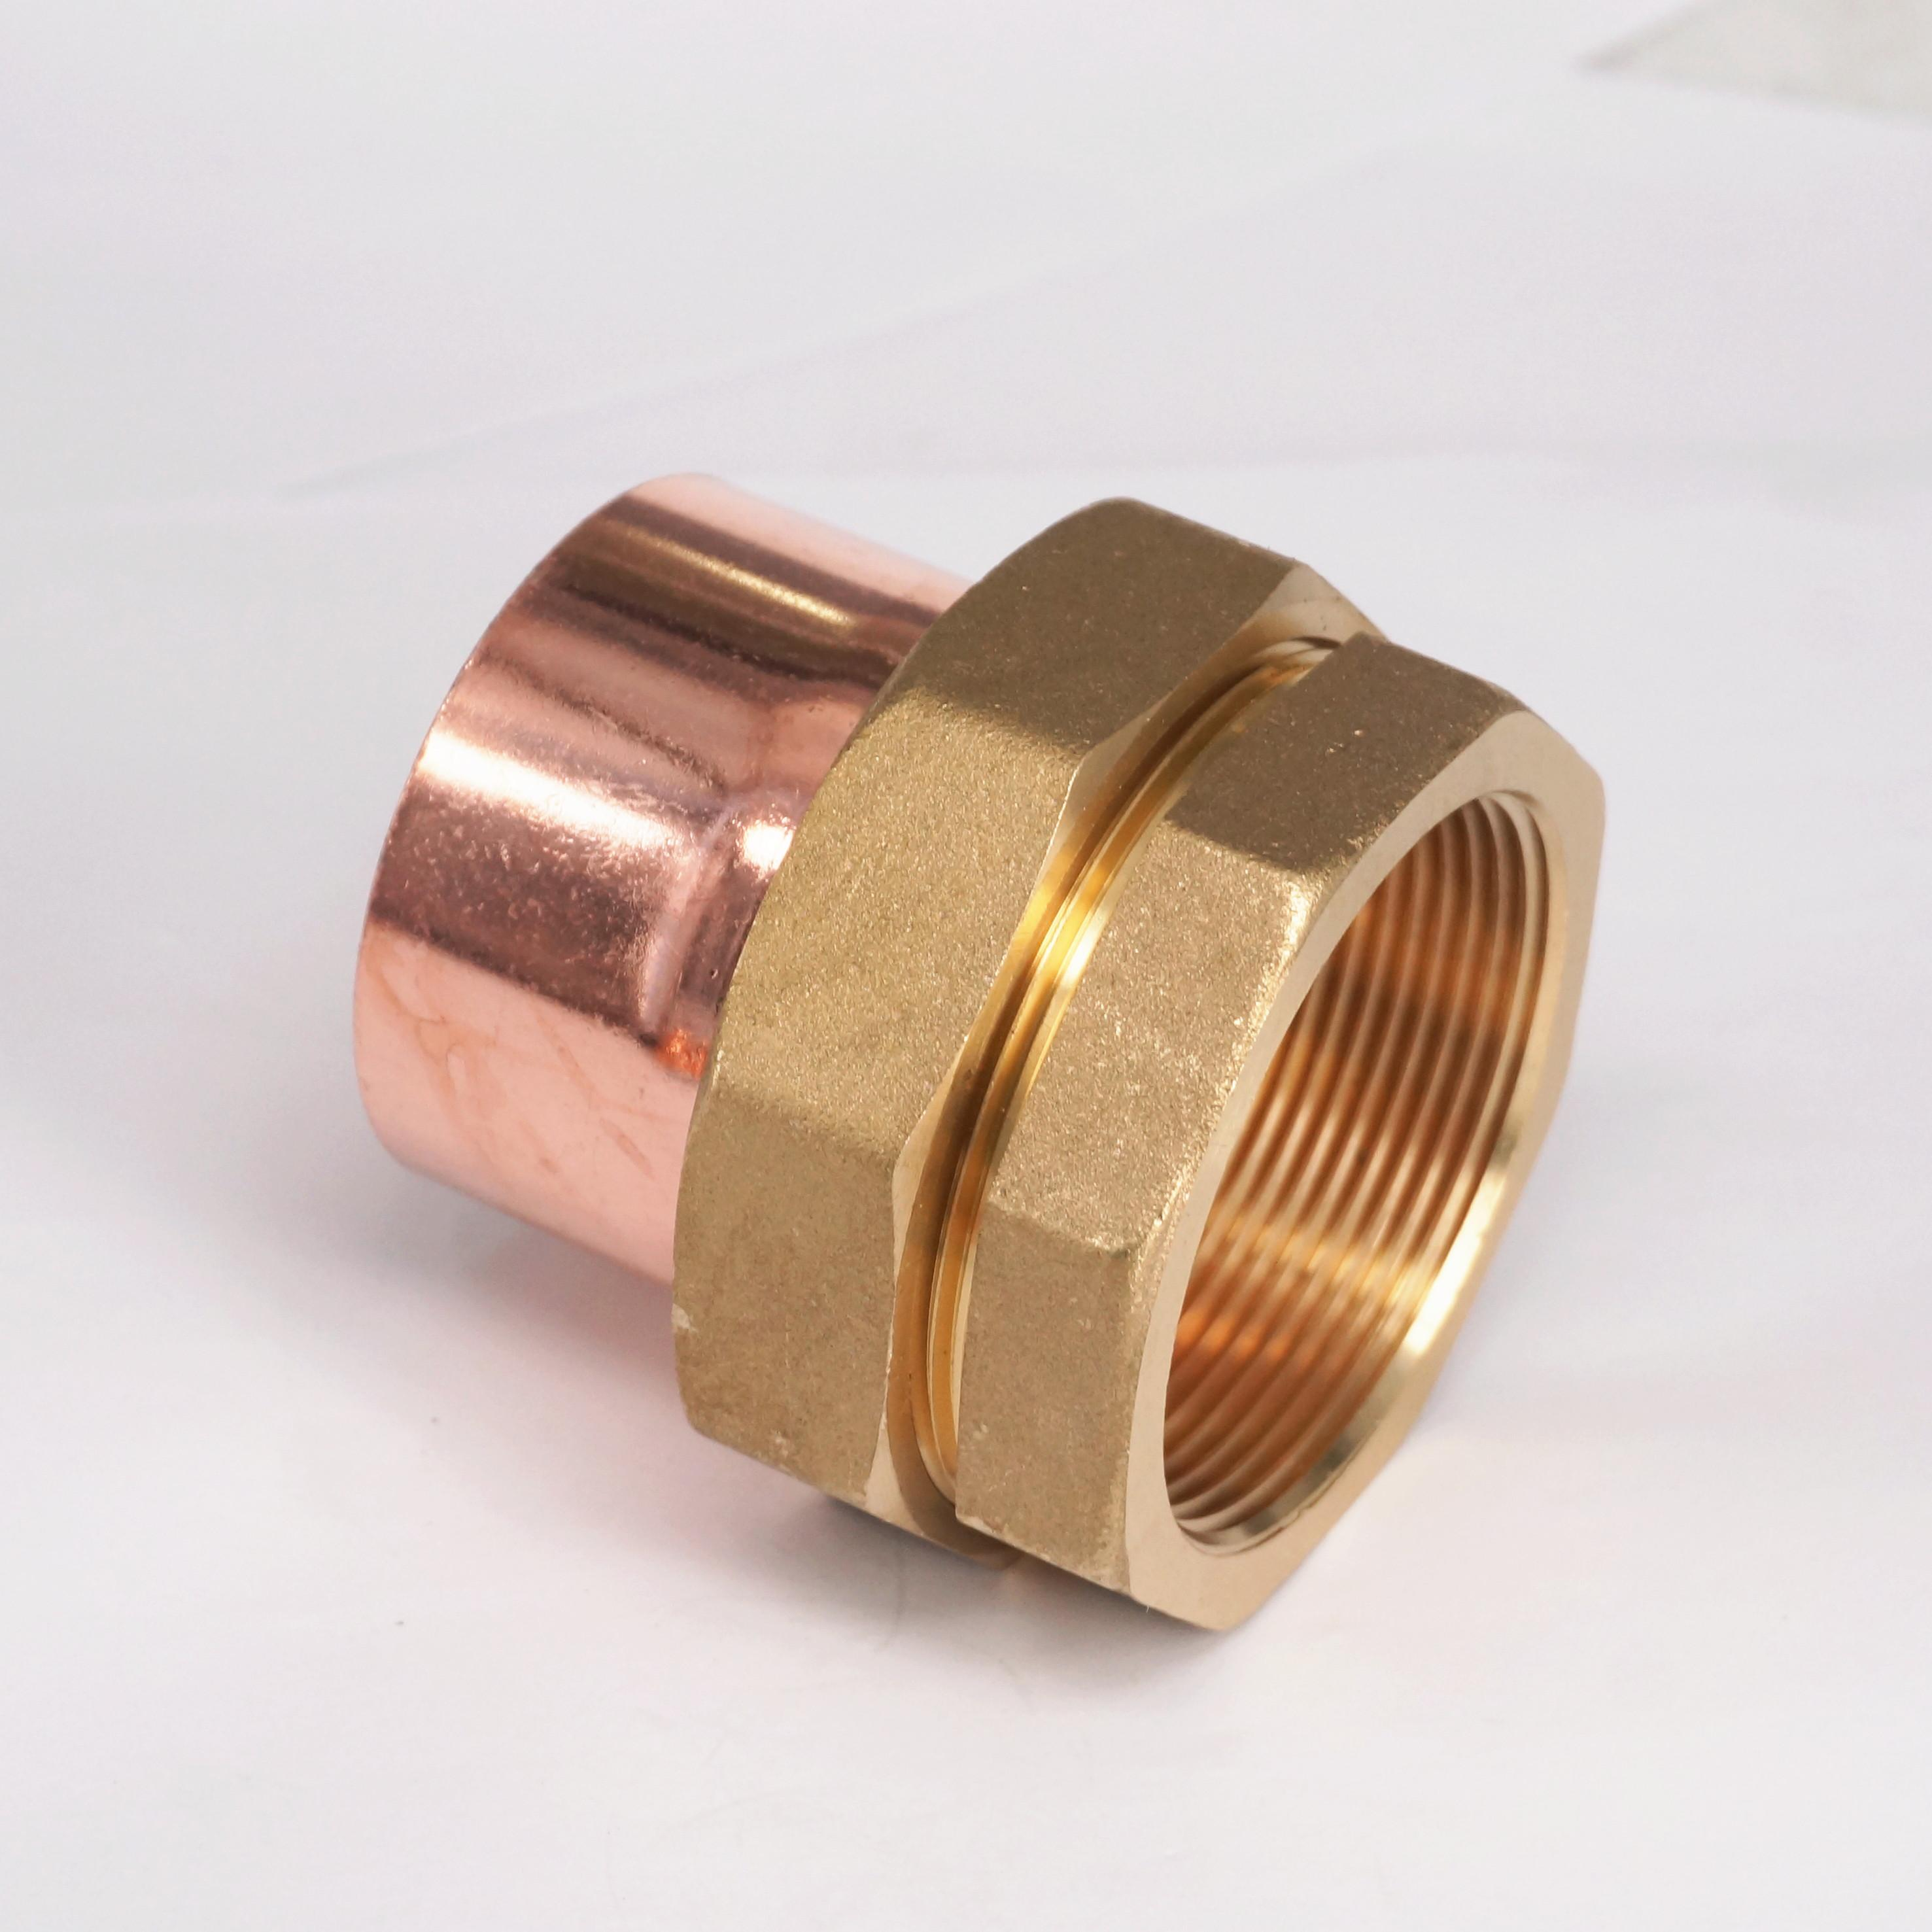 2 BSP x 54mm Brass Female Thread Socket Union to Copper End Feed Pipe Fitting for water gas oil brass pipe fitting connector coupler 45 deg 3 4 female bsp thread x 3 4 female bsp thread for water fuel gas